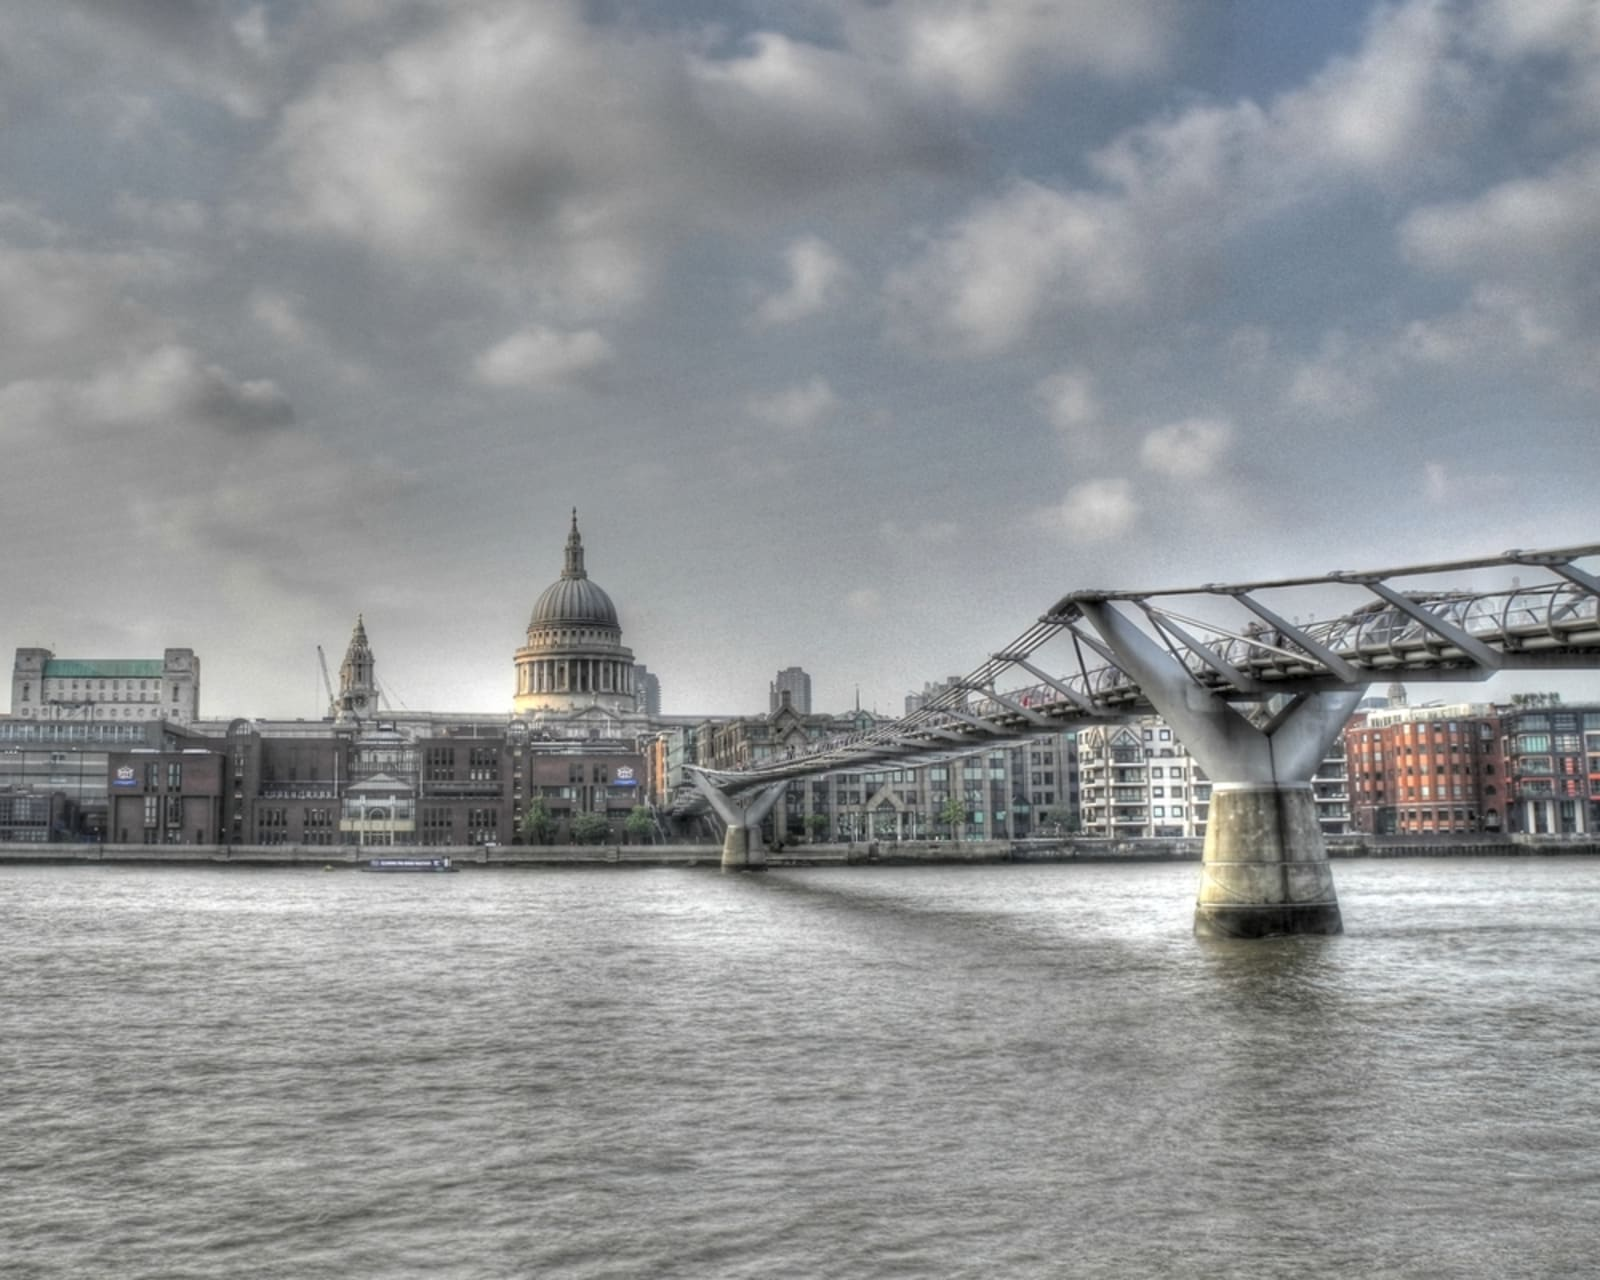 London - Harry Potter London Film Locations in Southwark and The City